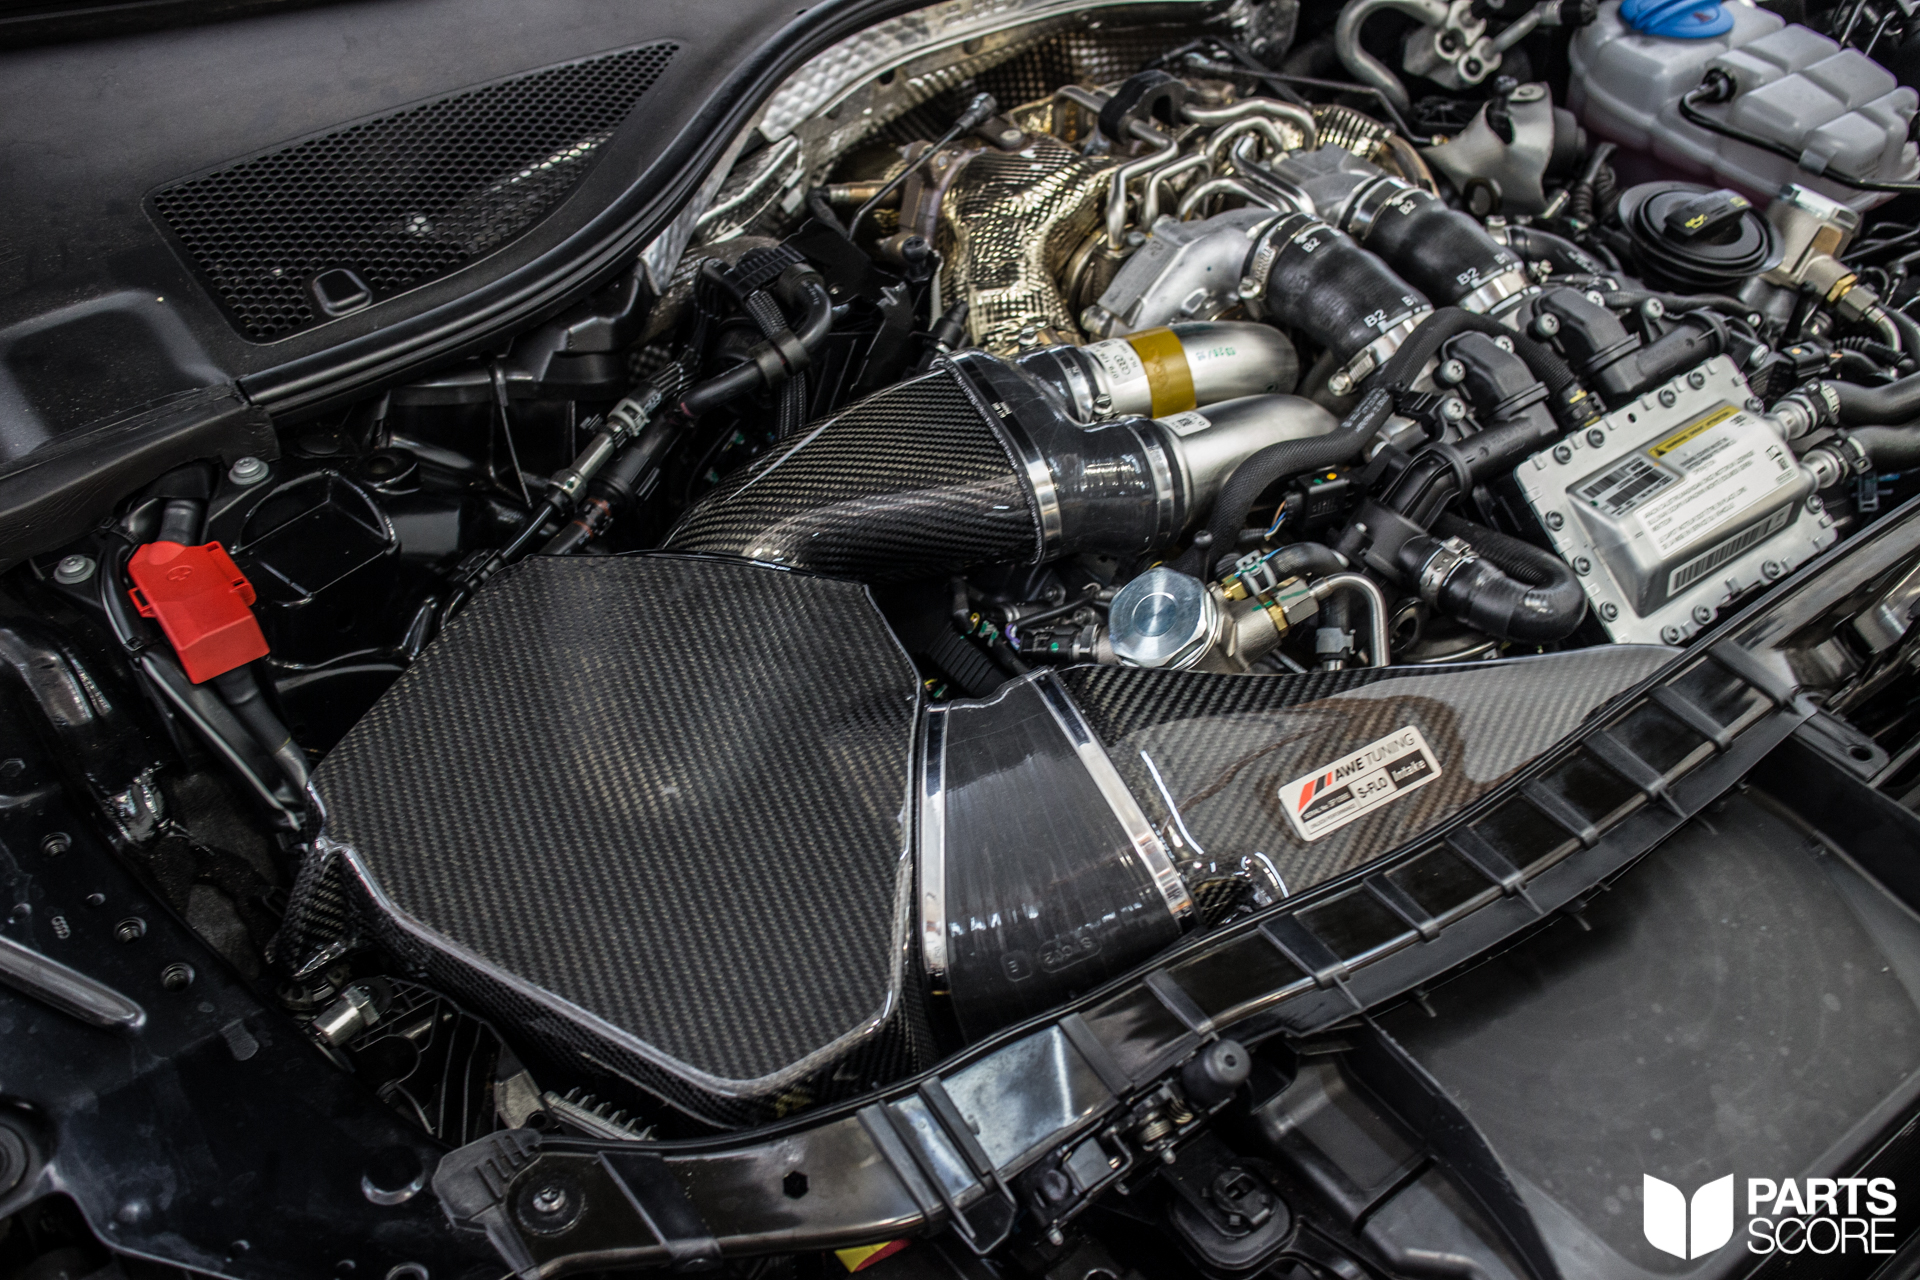 Audi Rs7 Giac Awe And H Amp R Performance Upgrades Parts Score